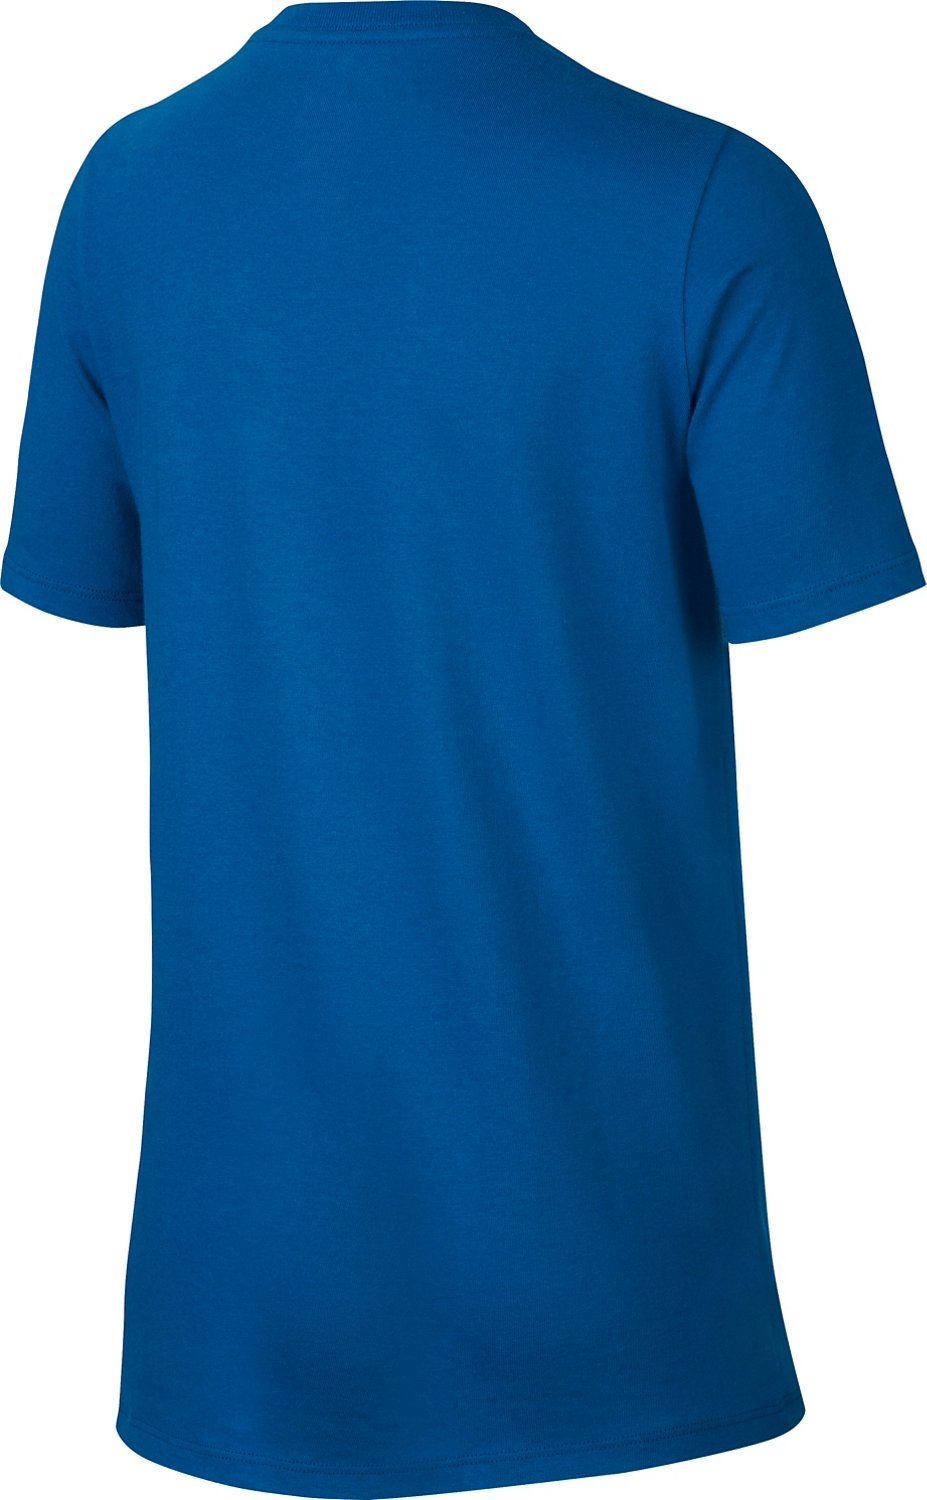 Nike Boys' My Rules Basketball T-shirt - view number 1